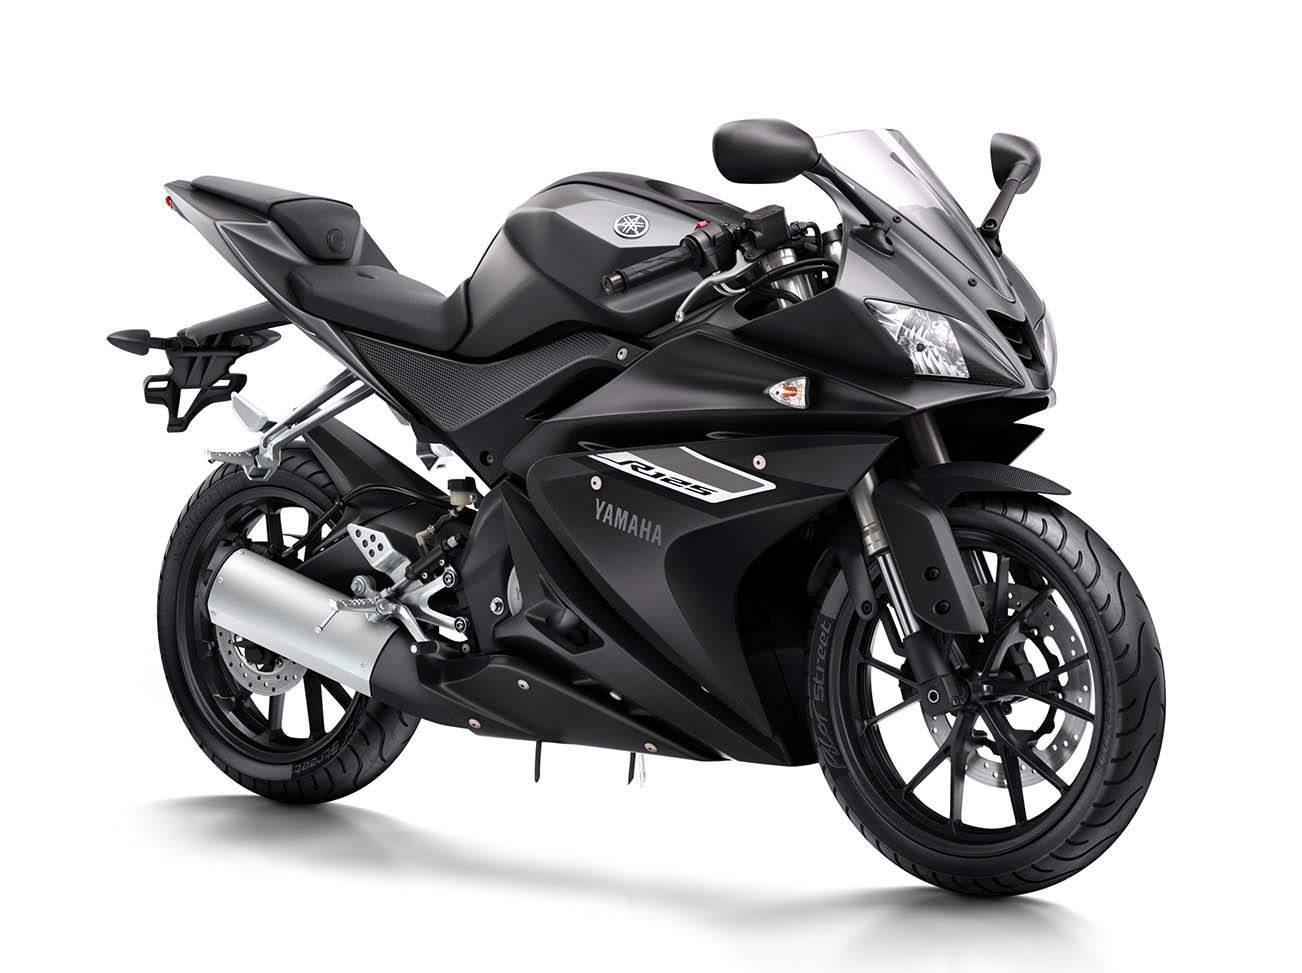 Yamaha Xt 660 X 2004 besides UM125 CO likewise Honda Cbf1000 2007 additionally Honda Crf450 Rally 2013 furthermore plete List Of Accessories For Bmw G310r. on liquid cooled car